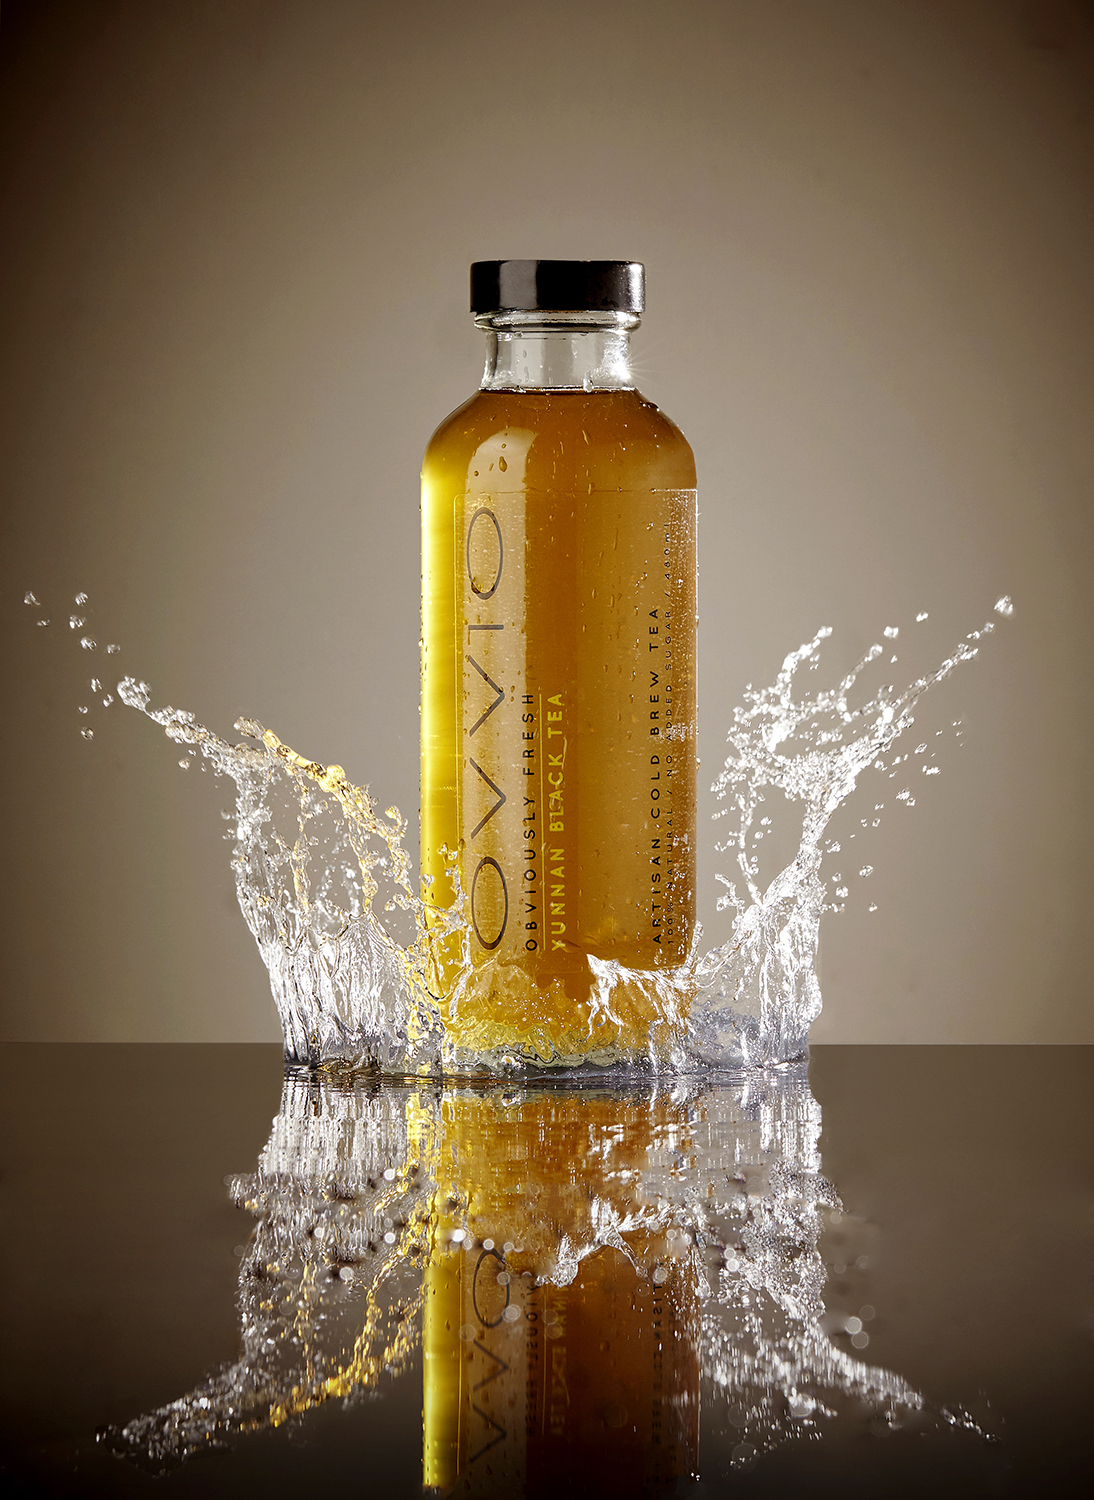 High speed water splash photography for advertising by London still life photographer. Drinks bottle in splash